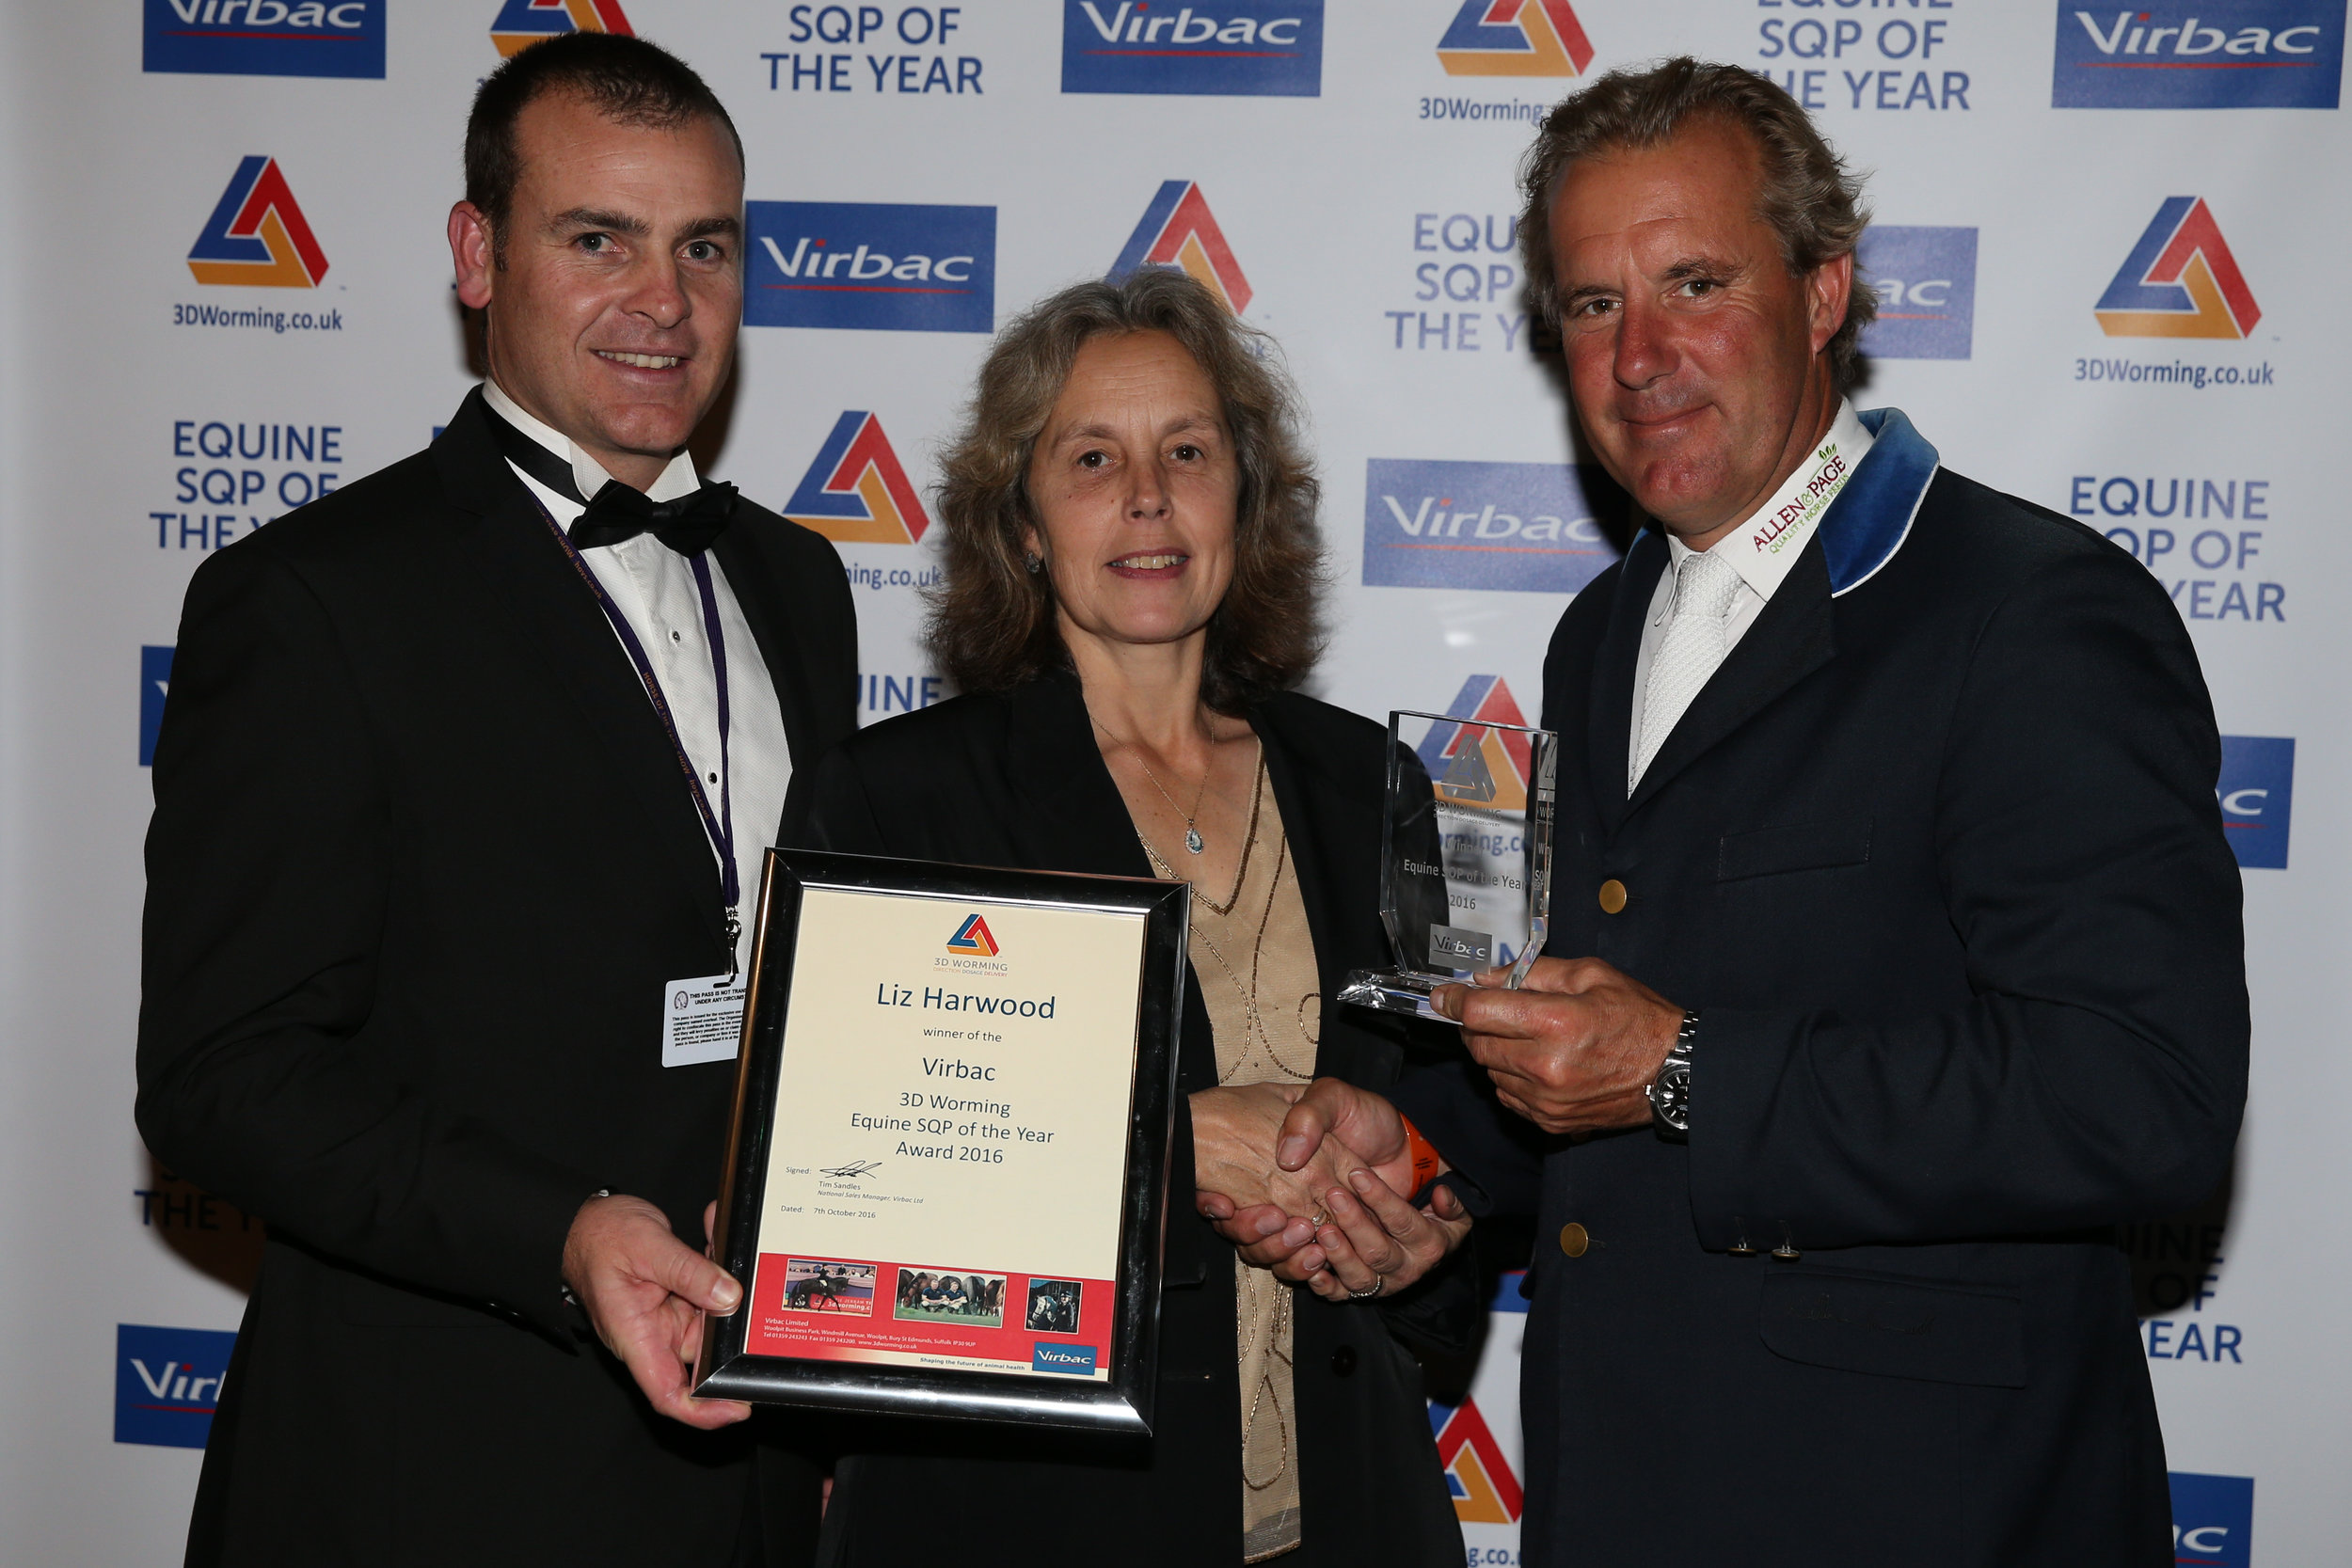 Virbac 3D Worming 2016 Equine SQP of the Year Liz Harwelll recieves her award from Virbacs Frazer Hodgson and leading show jumper William Funnell